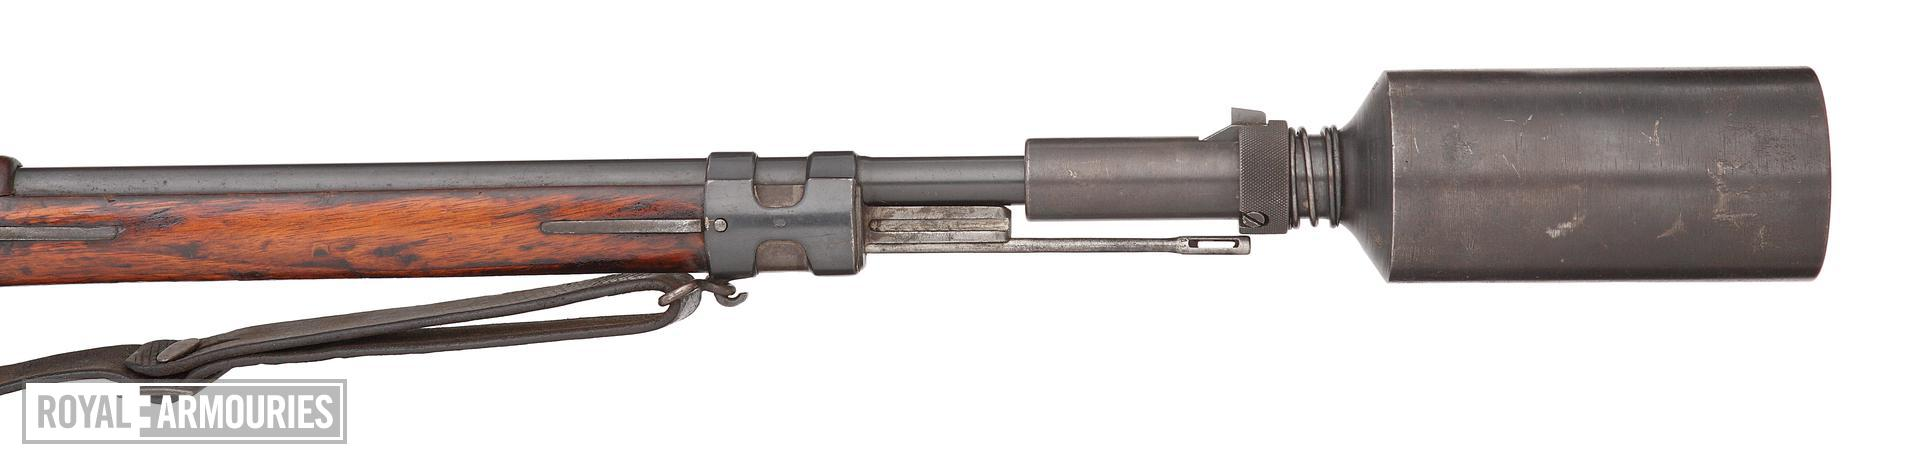 Mauser Gewehr 98 rifle with grenade cup discharger.